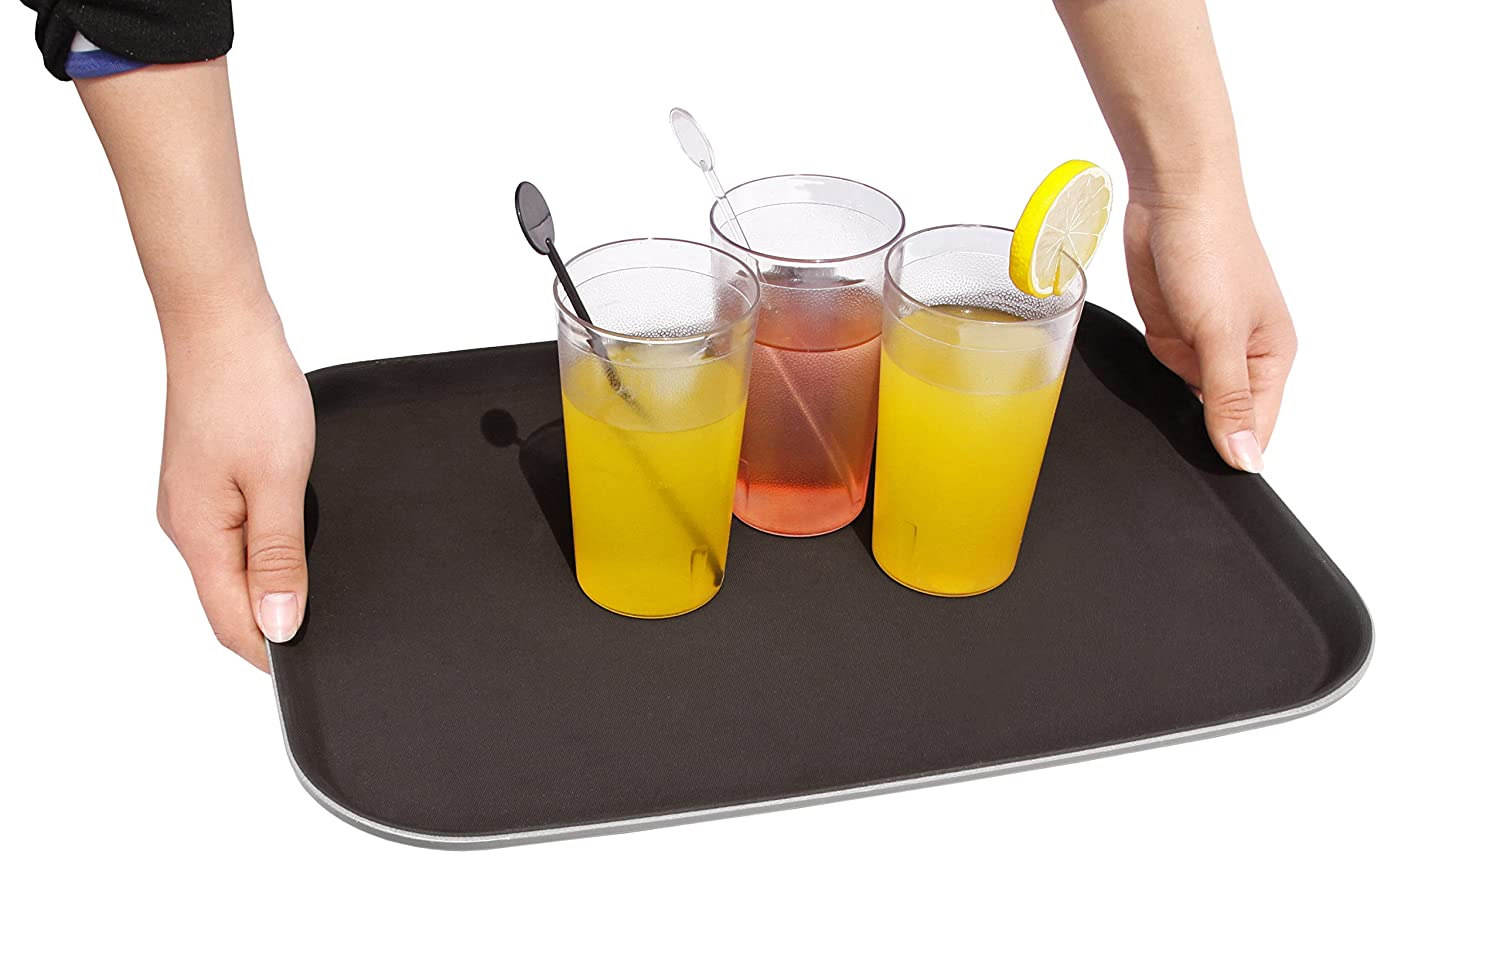 New Star Foodservice 25095 Non-Slip Tray, Plastic, Rubber Lined, Rectangular, 14 x 18 inch, Black